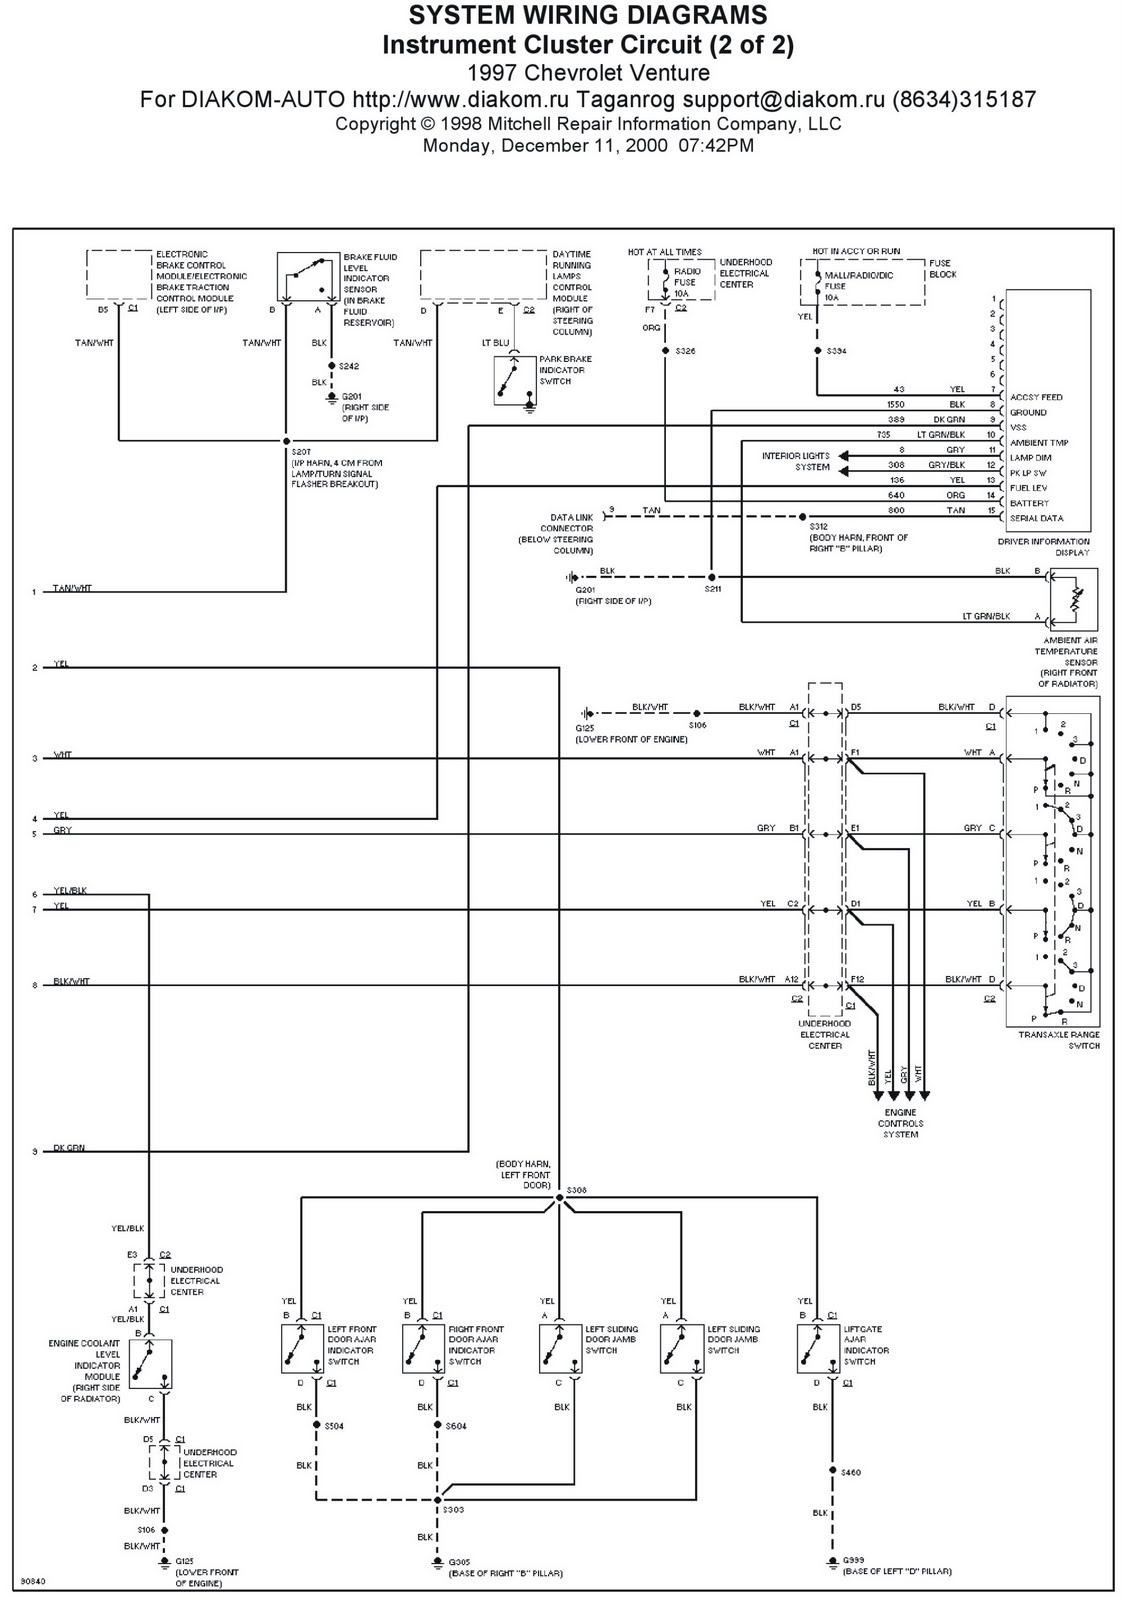 Peugeot 508 Wiring Diagram For The Instrument Cluster